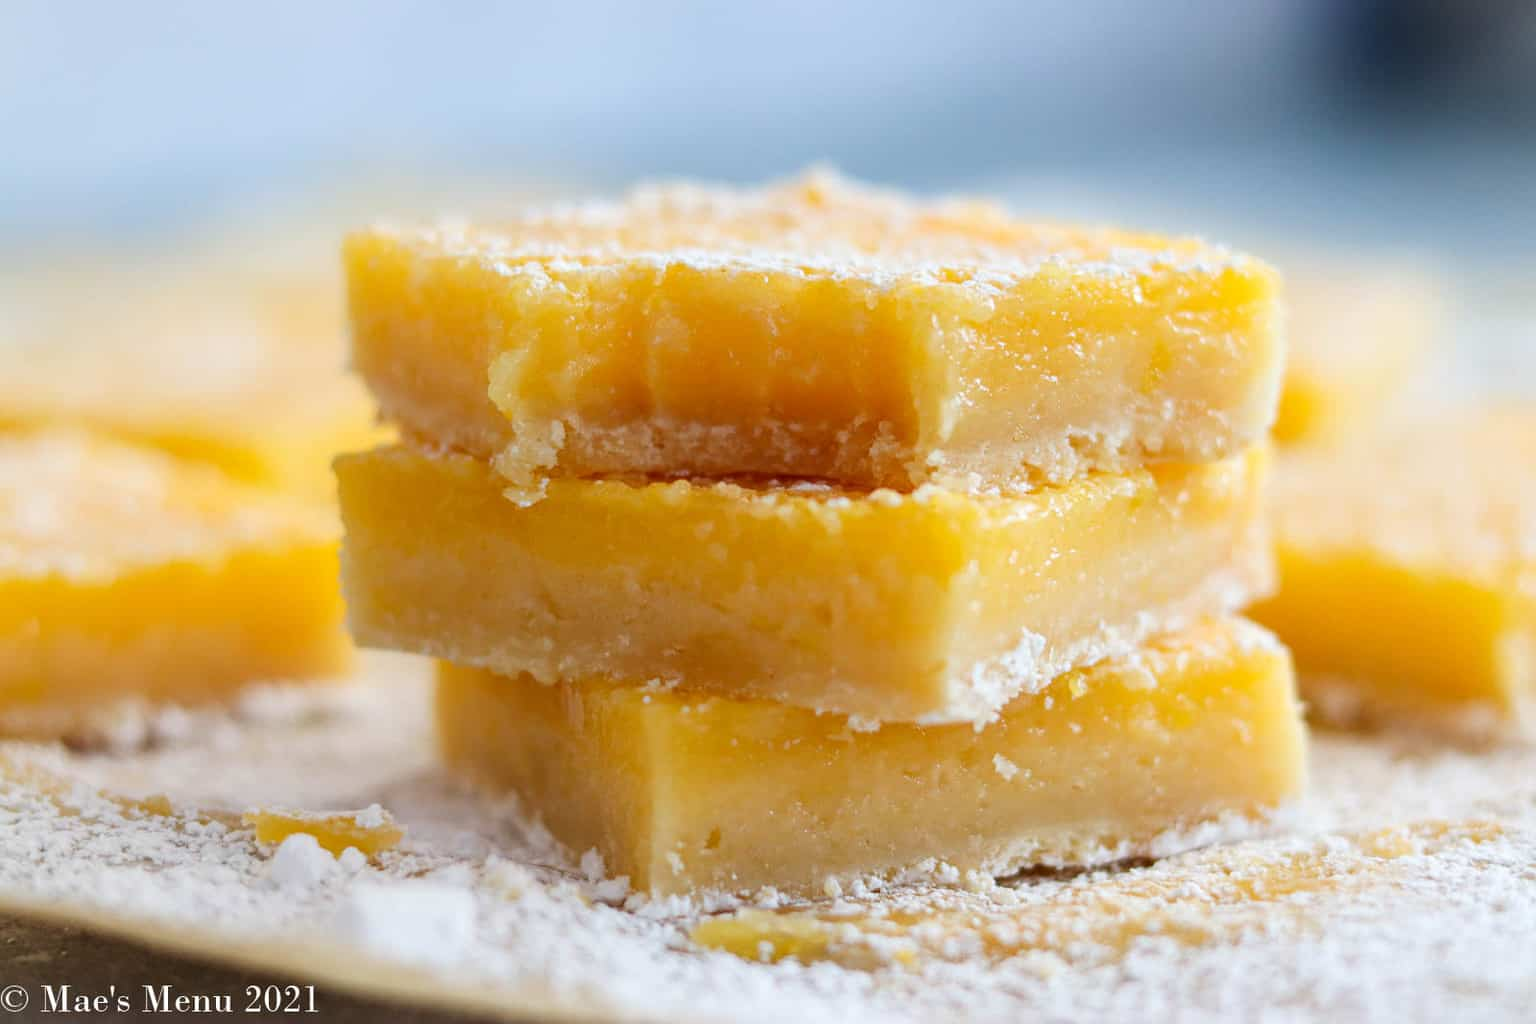 A stack of lemon bars on a sheet on parchment paper